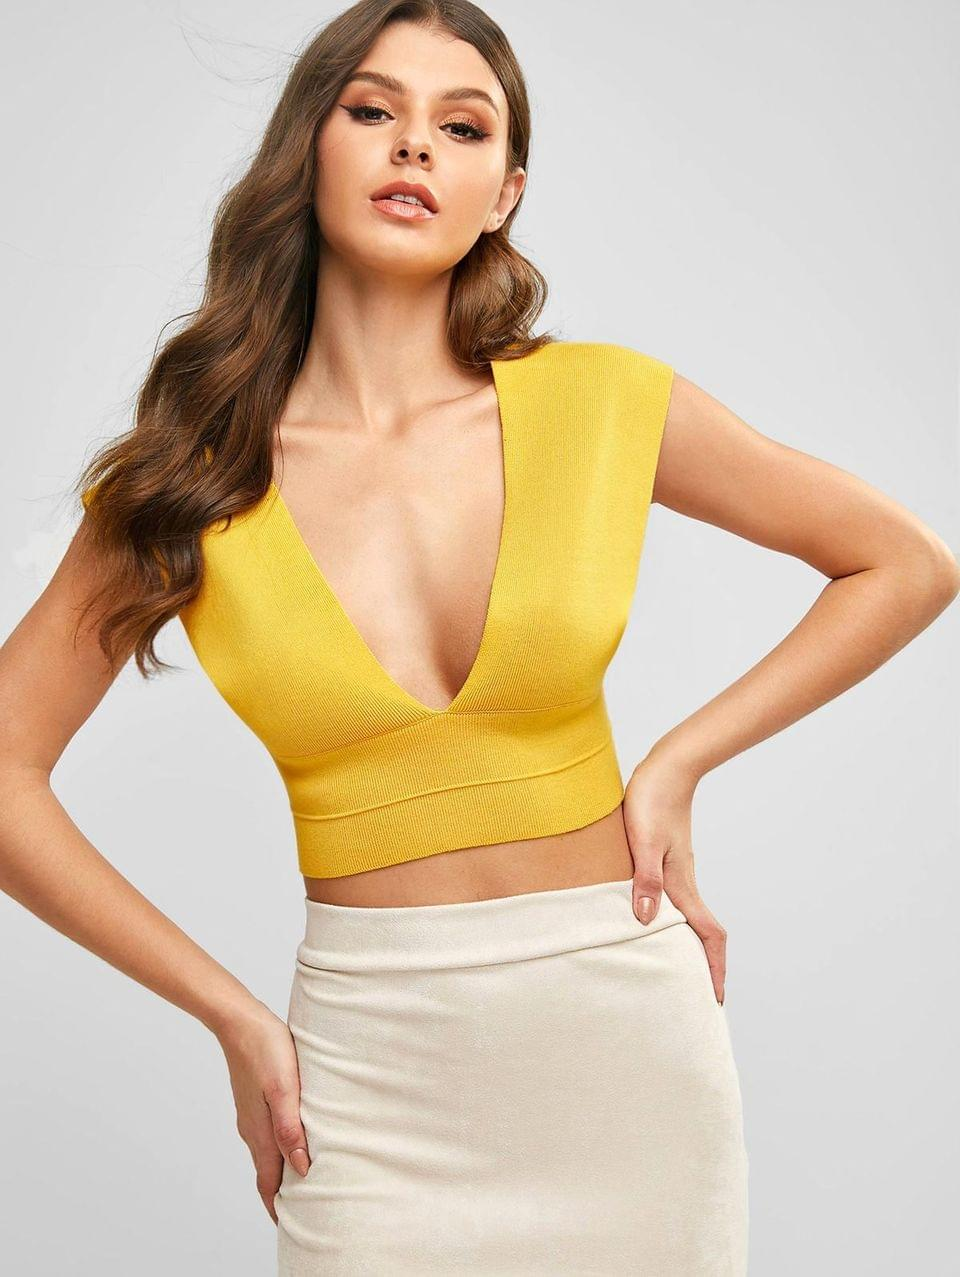 Women's Knitted Plunging Crop Tank Top - Yellow